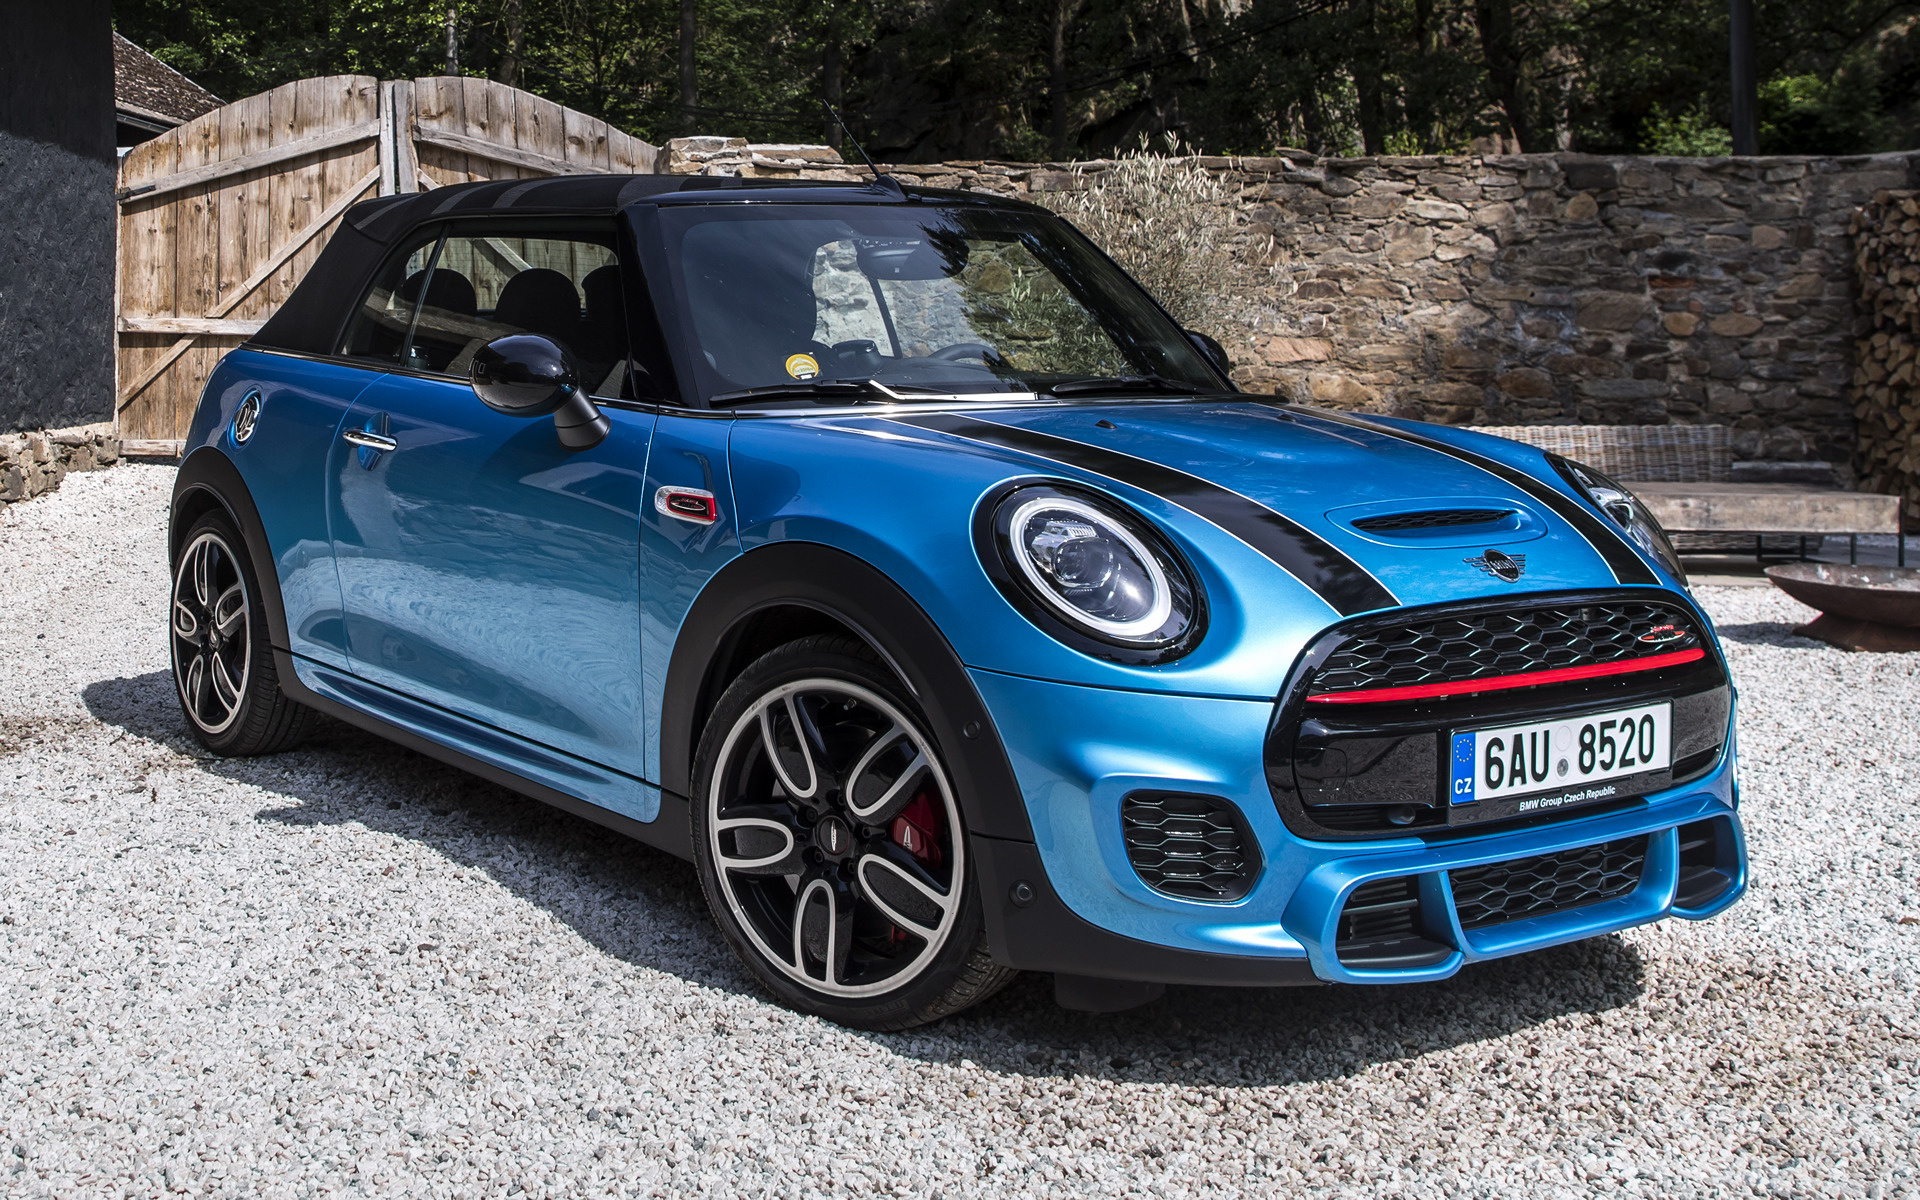 2018 Mini John Cooper Works Cabrio Wallpapers And Hd Images Car